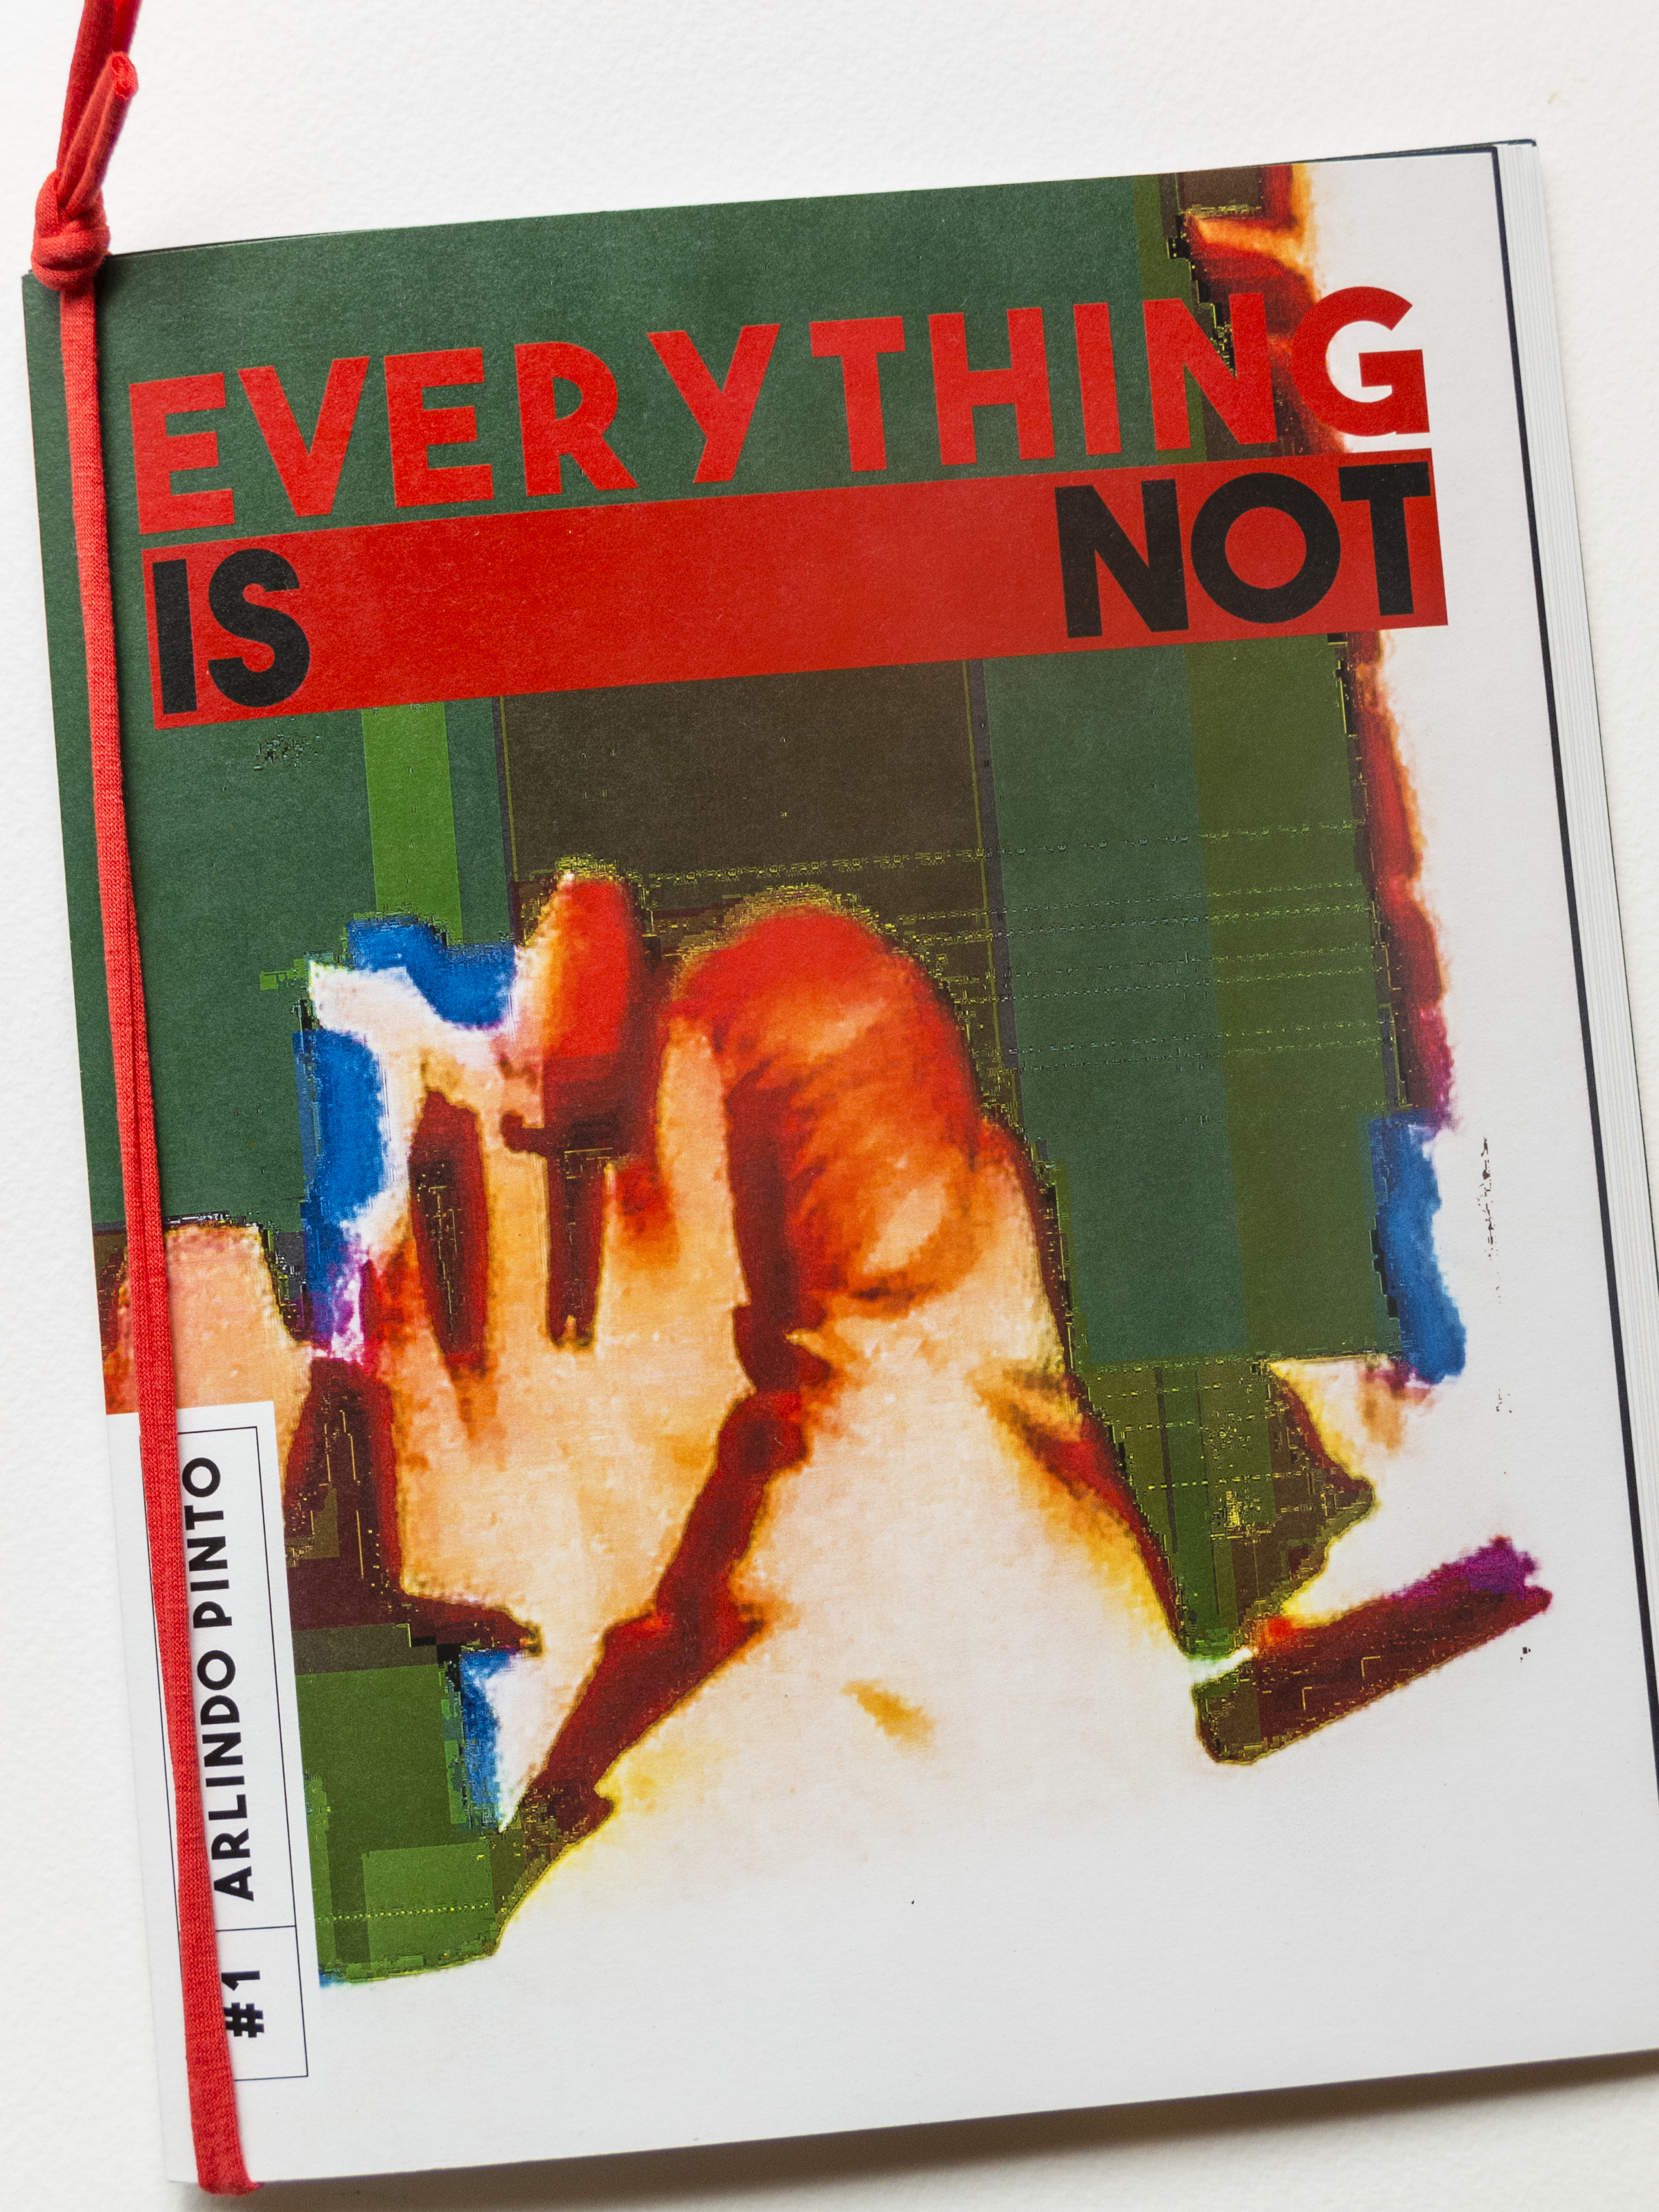 arlindo_pinto_everything_is_not_1